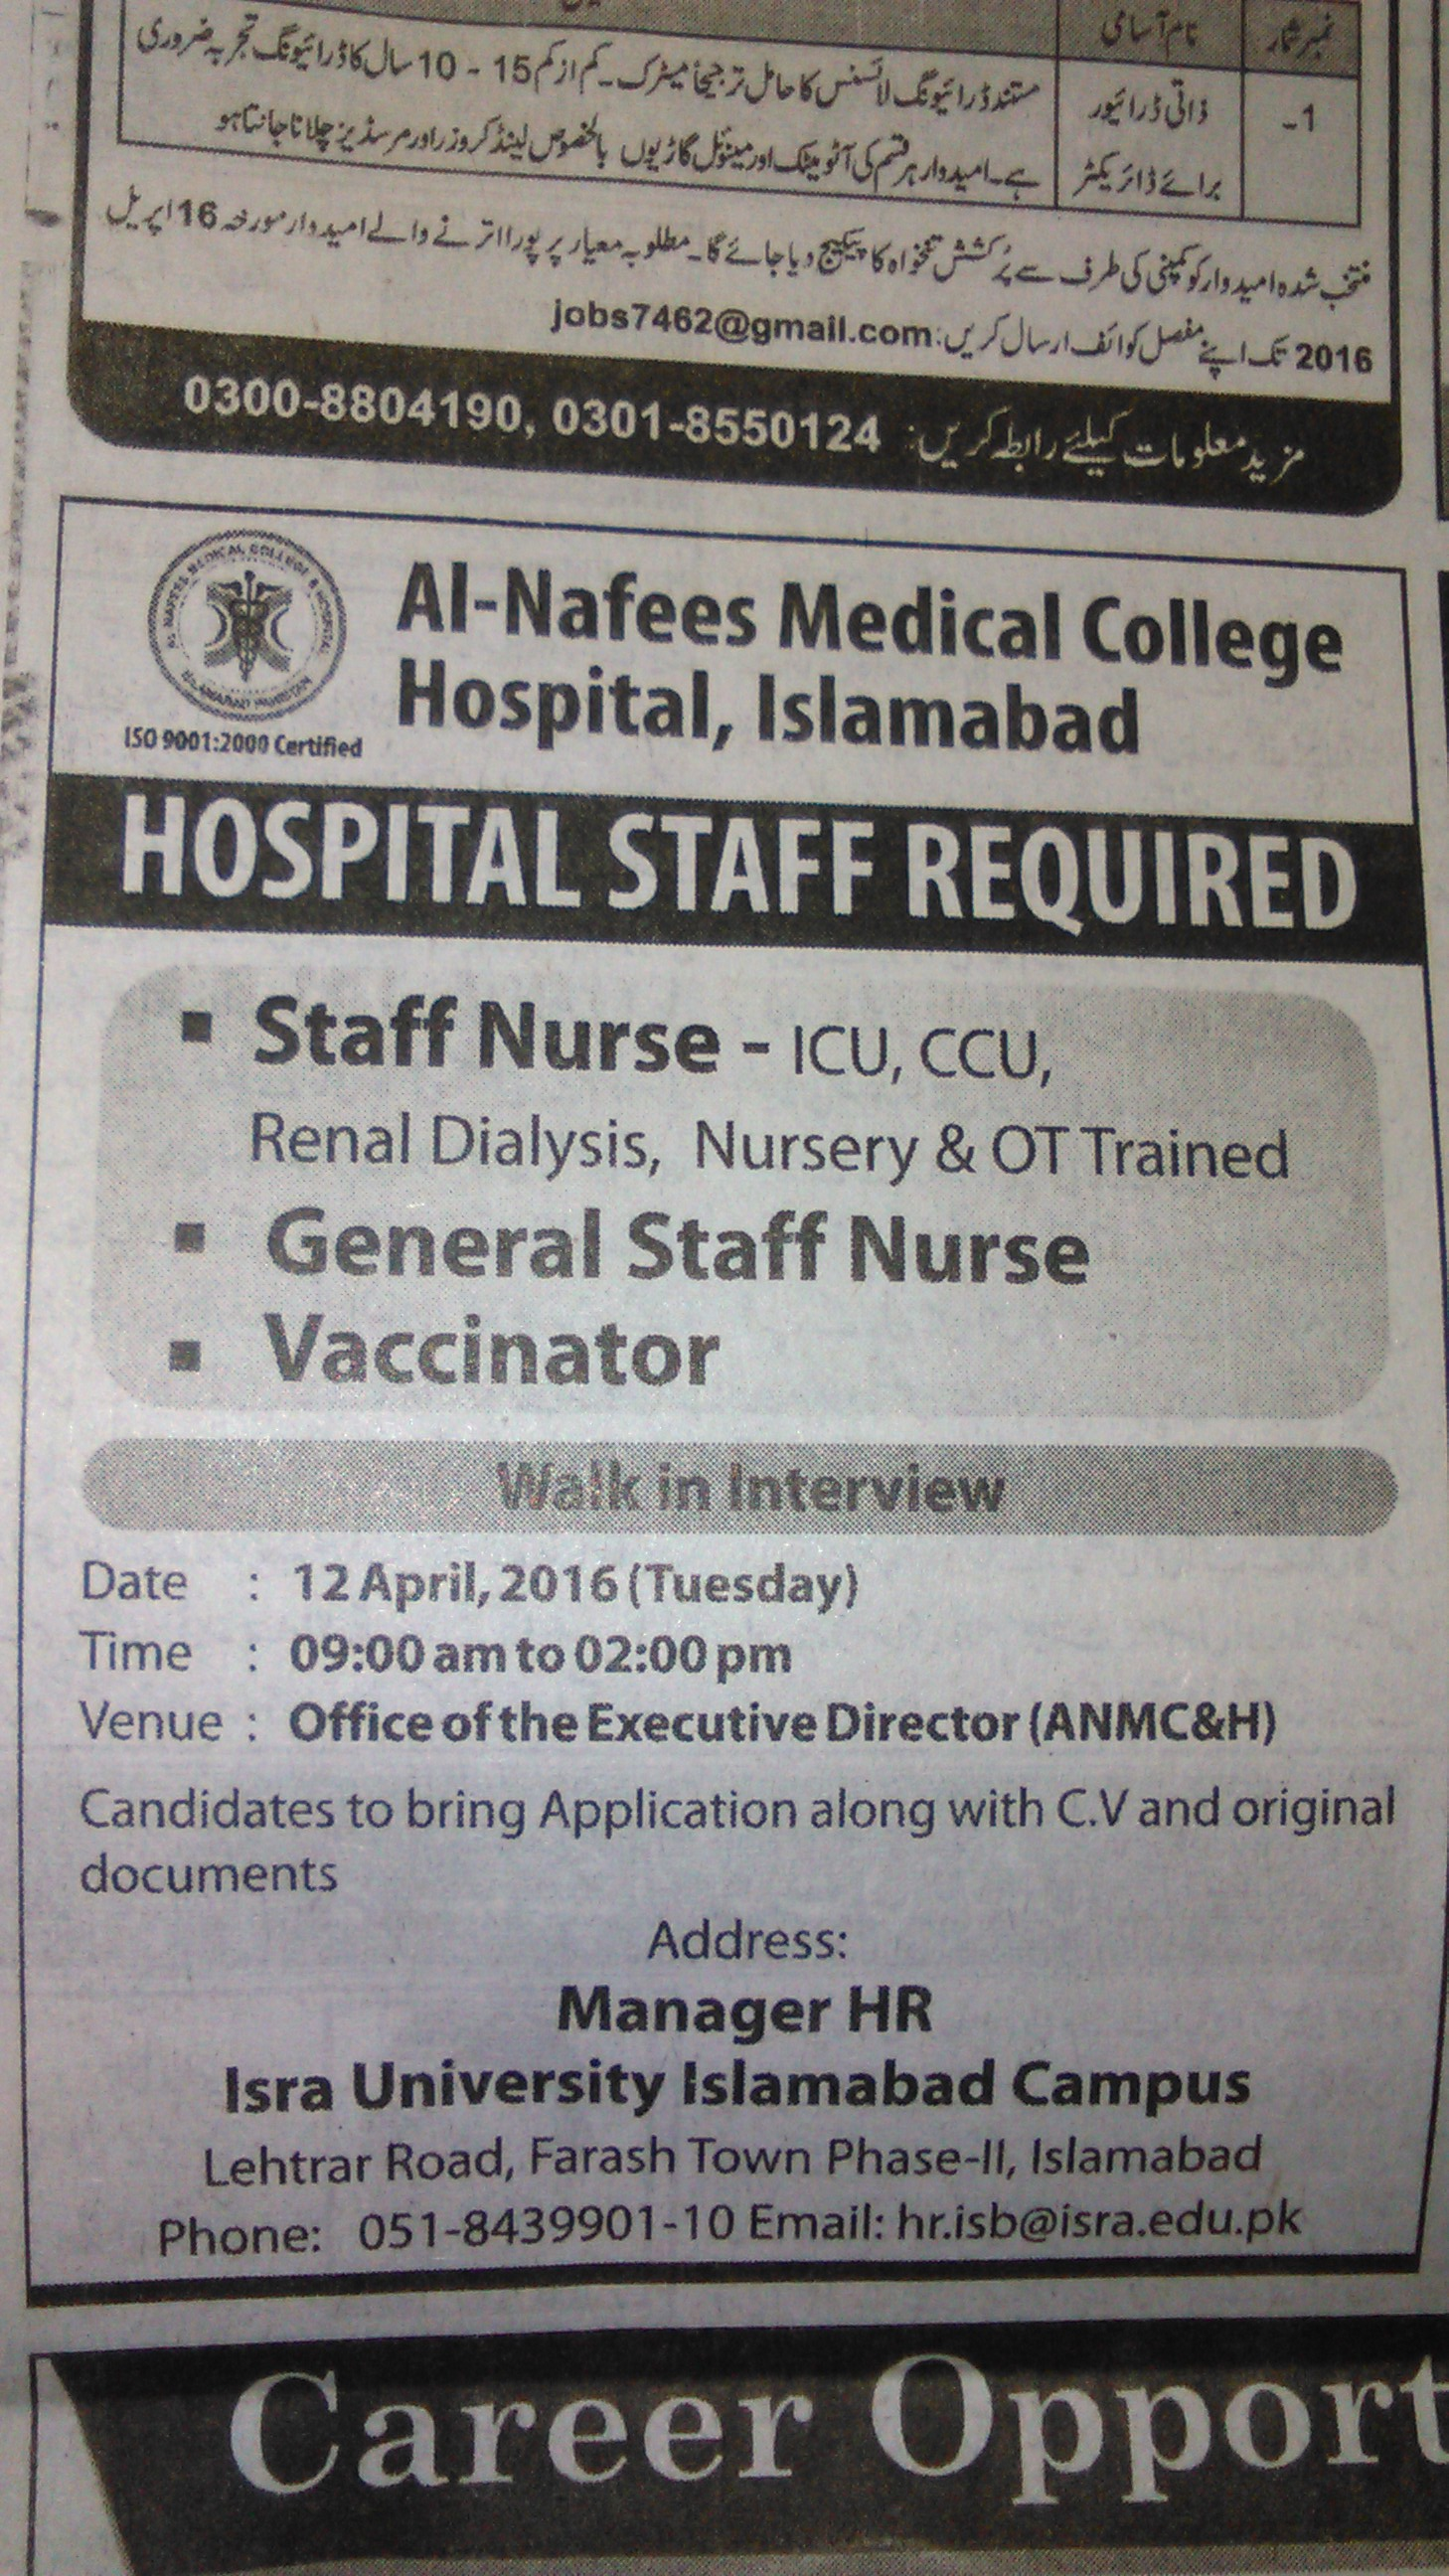 Al-Nafees Medical College Hospital Jobs 2016